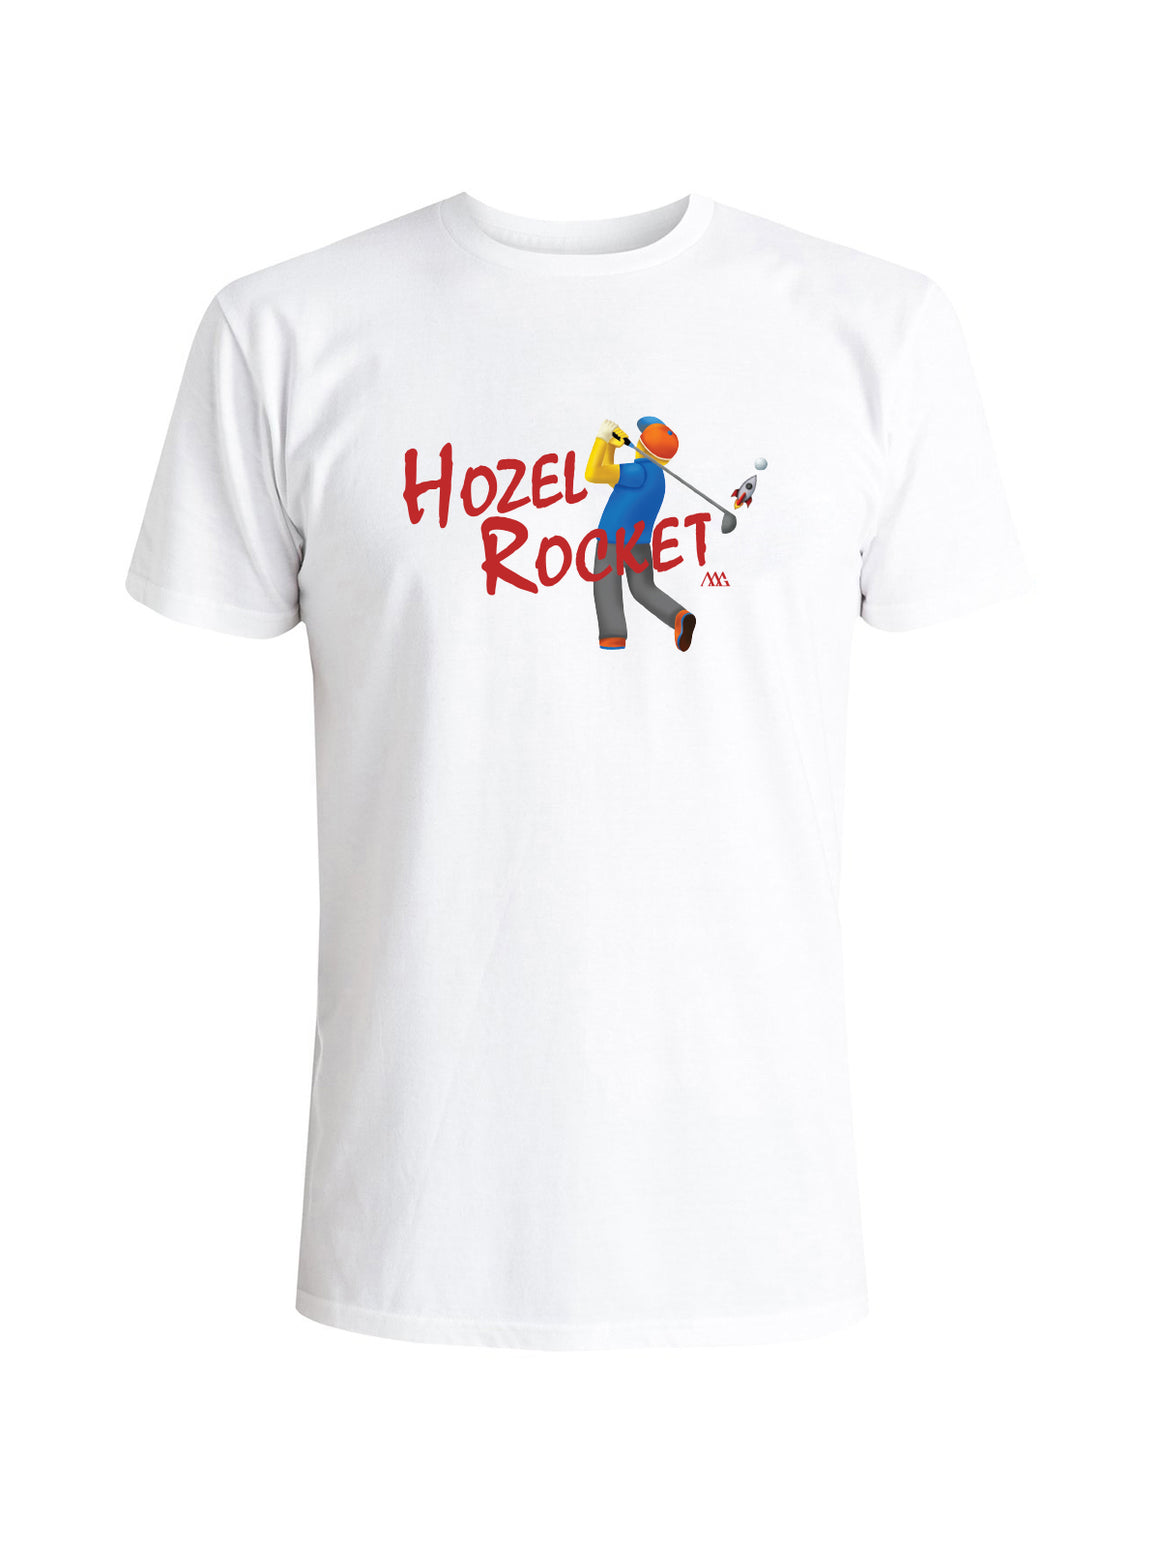 Hozel Rocket Tee Shirt -  White (Red)